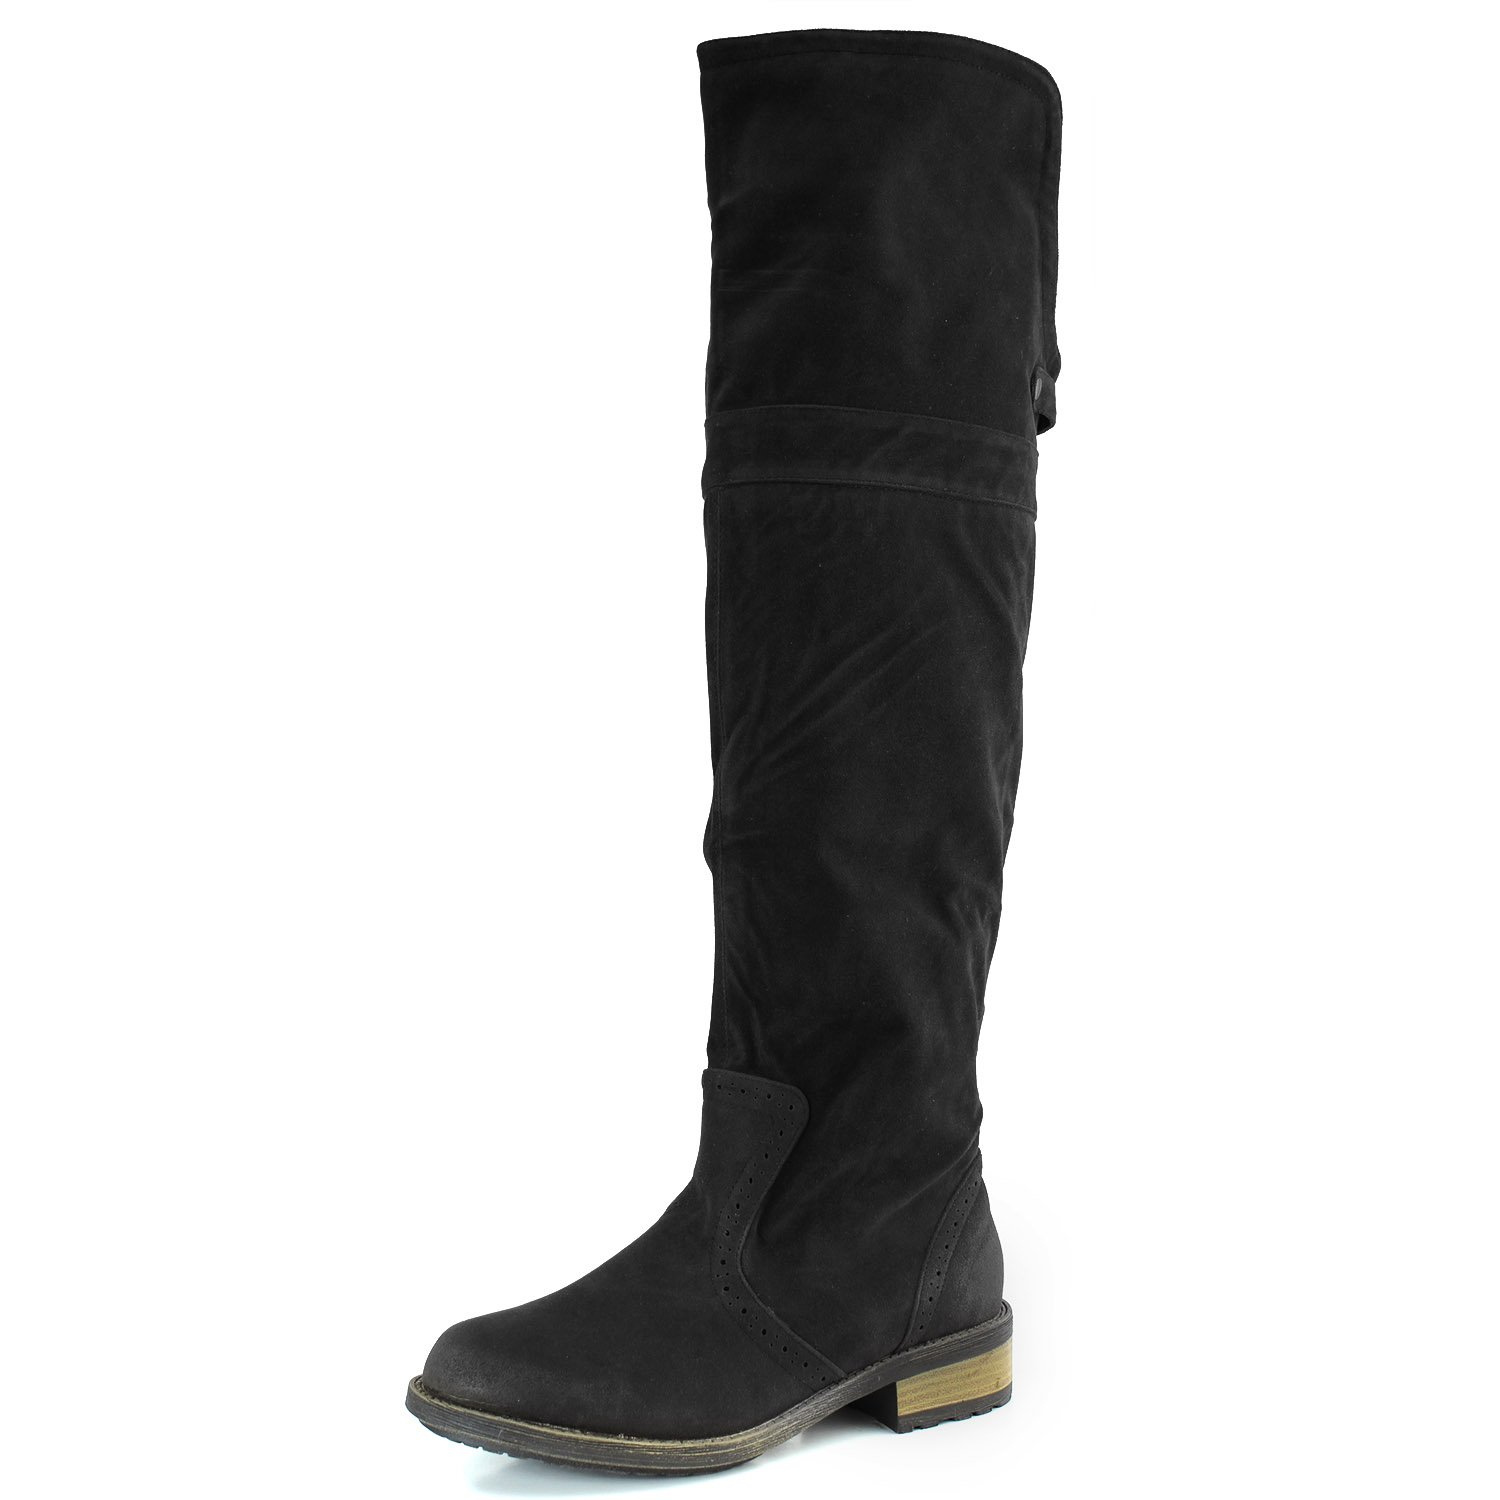 Qupid Women RELAX70 Closed Round Toe Western Flat Low Heel Boots Shoes Brillant Black SV, 6